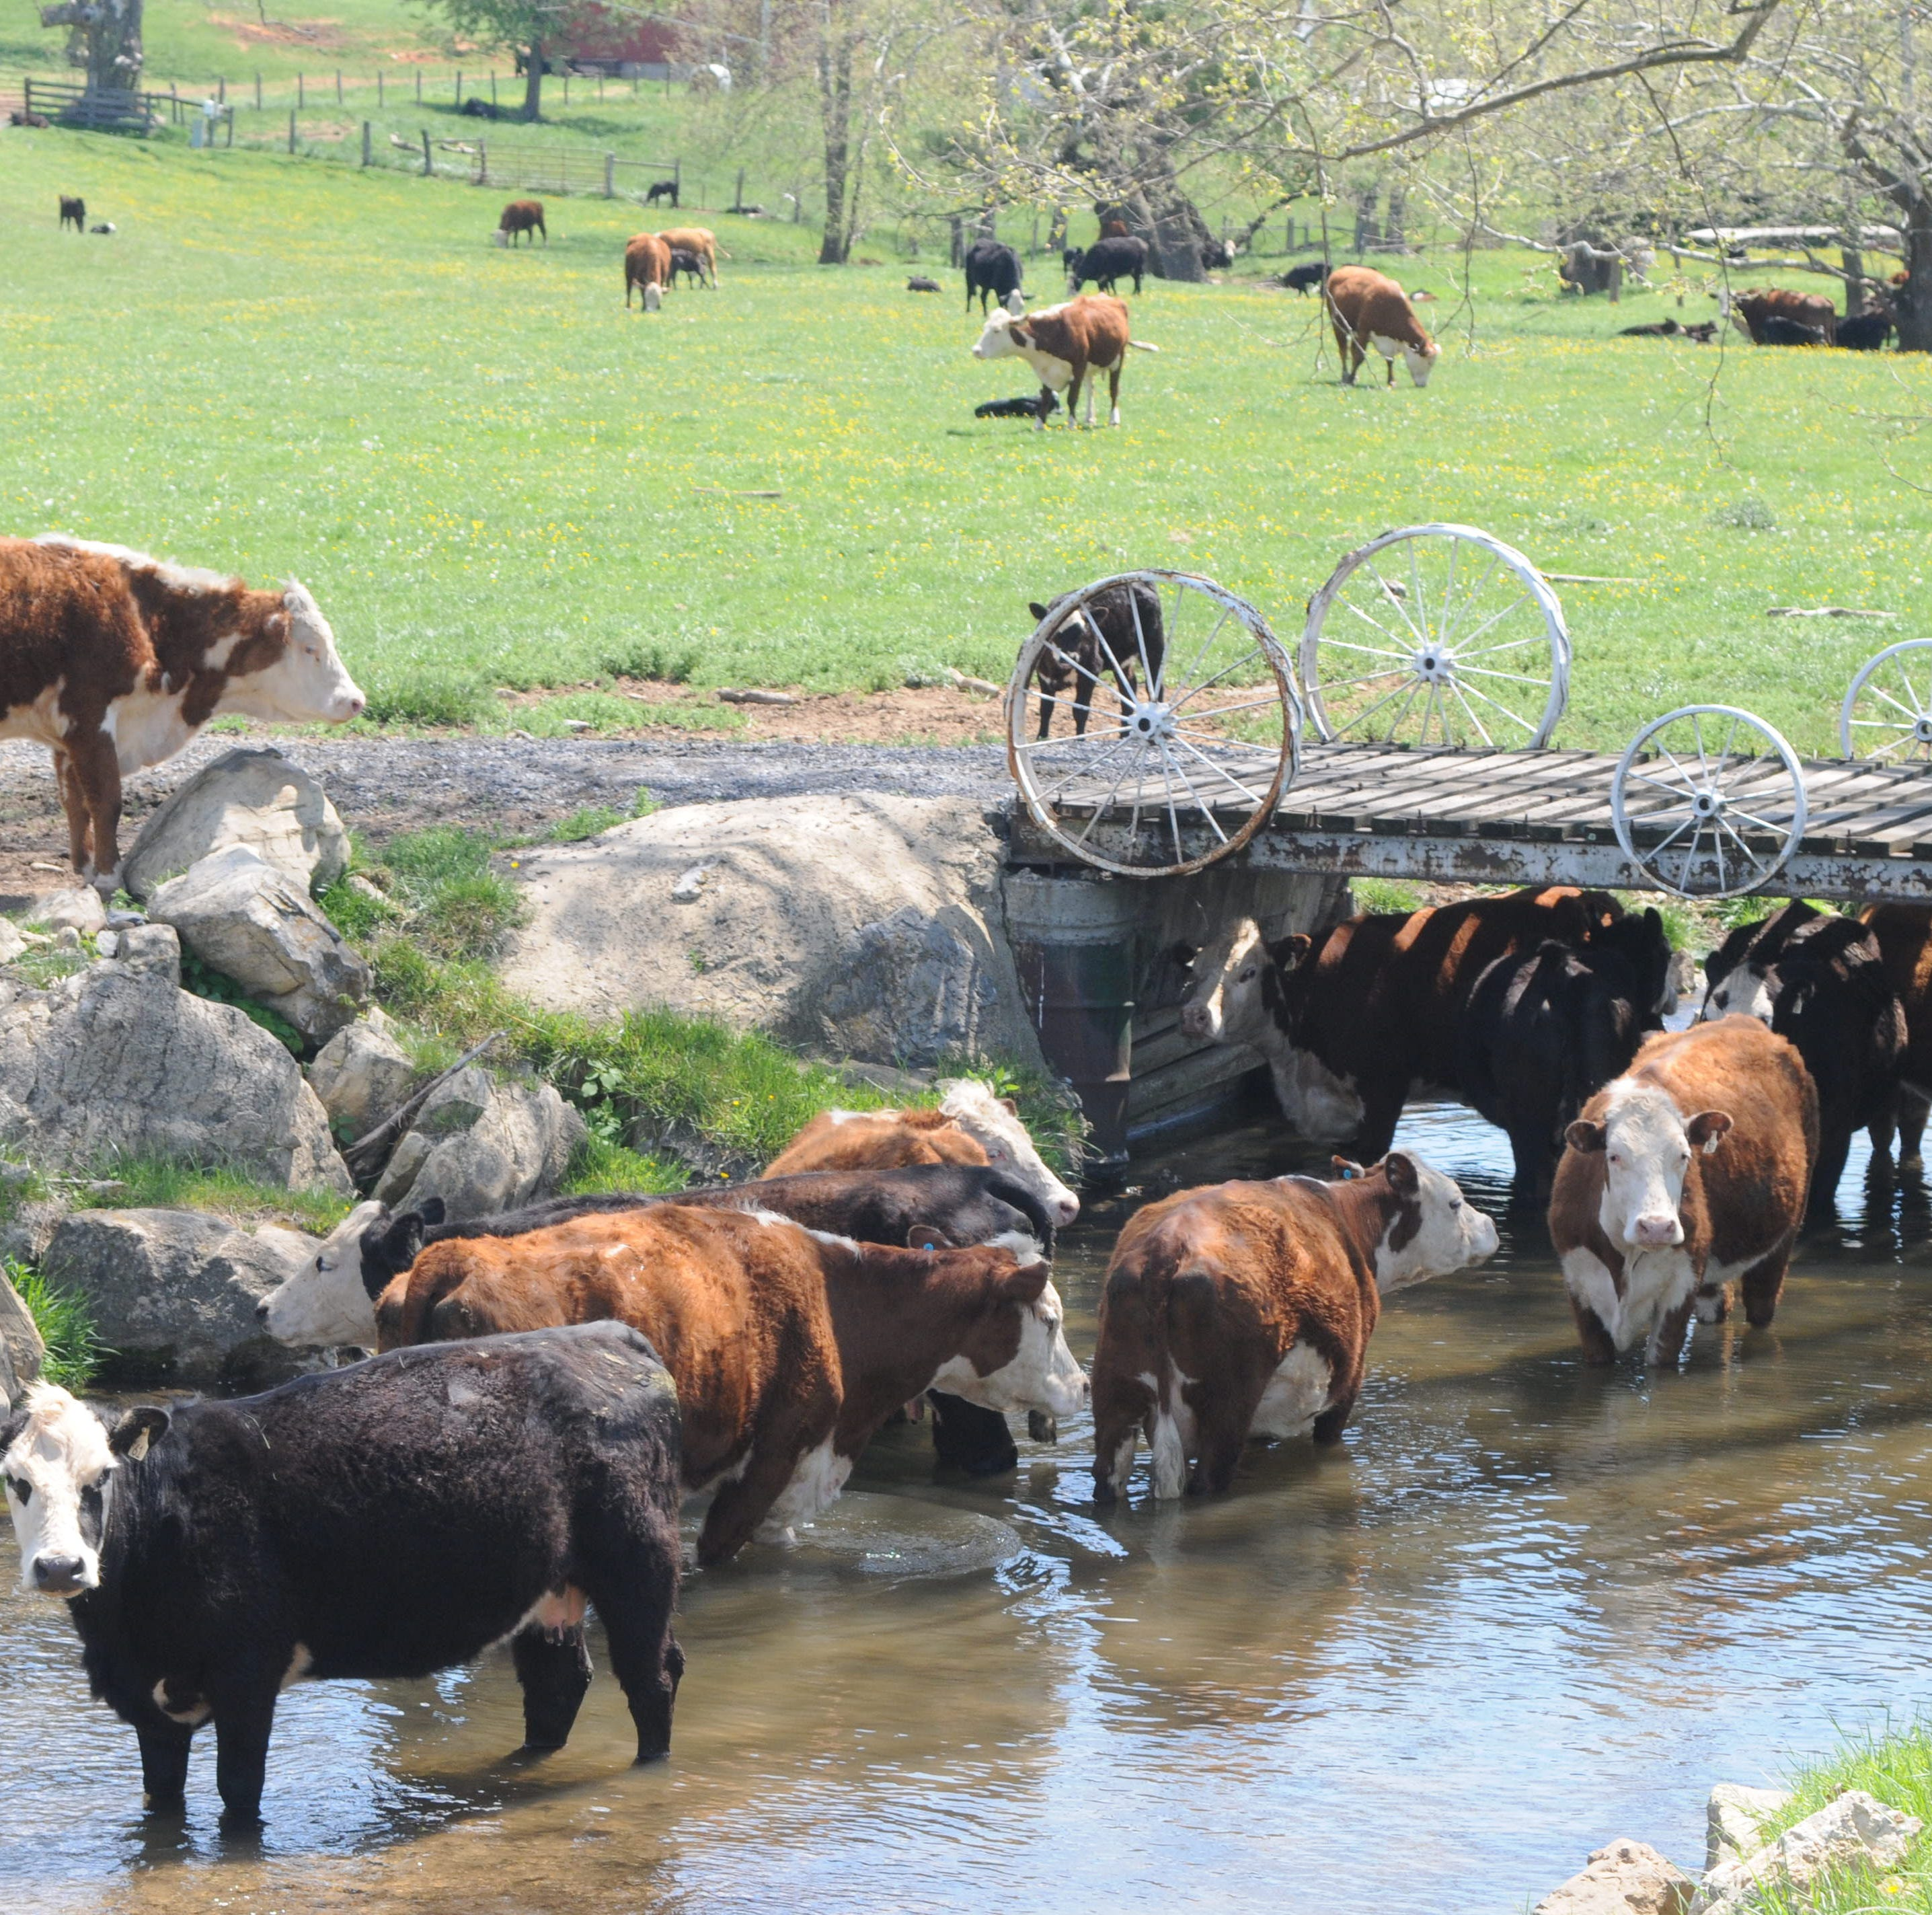 Report: Augusta farmers not keeping cattle out of streams